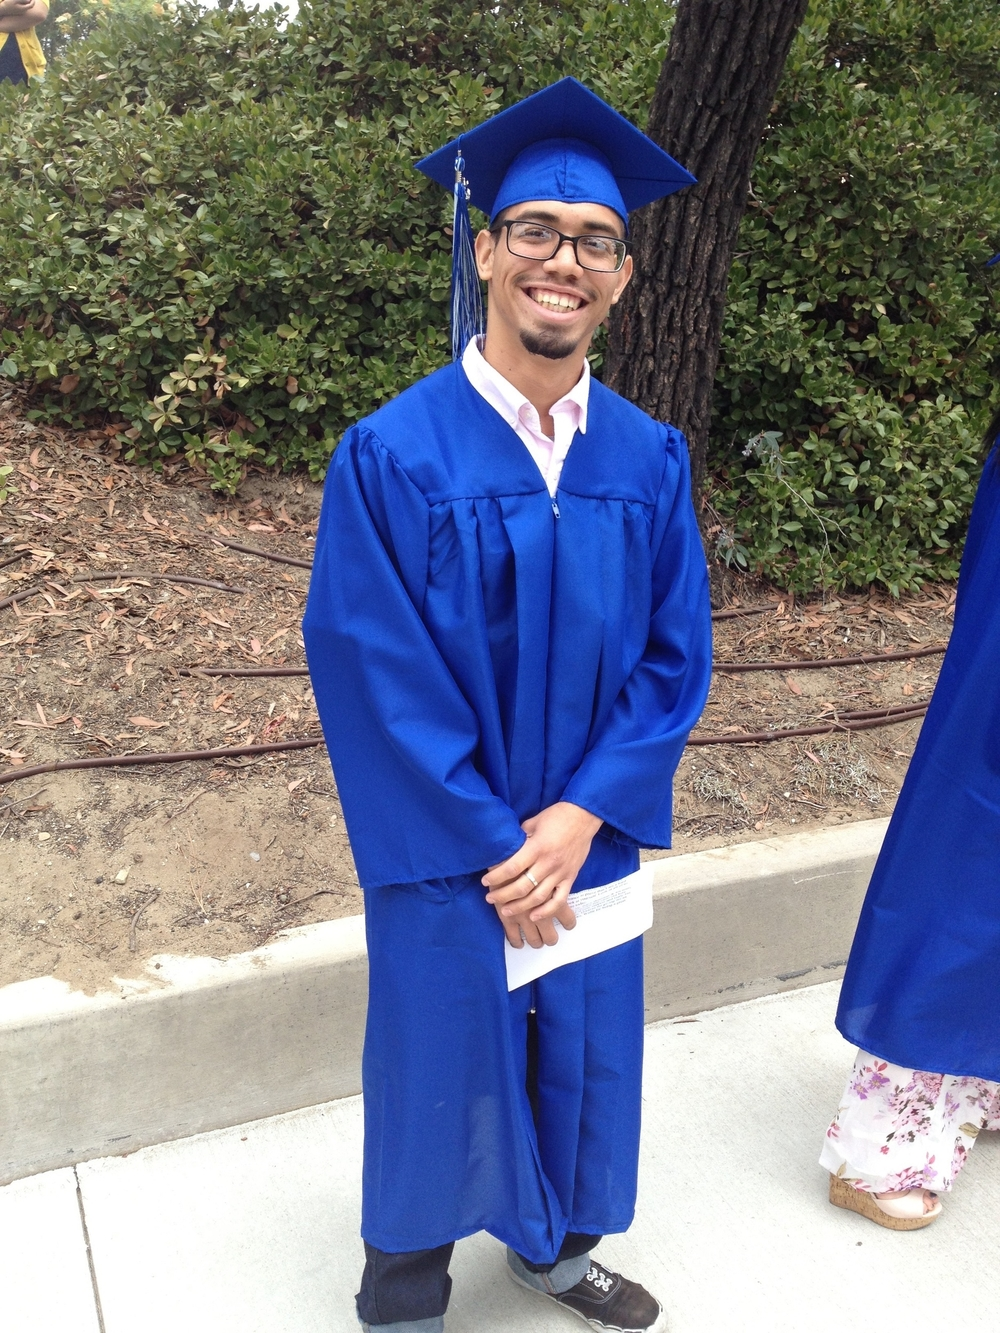 2016 Photos_VIPS_Graduation_Anthony- Graduation_01.jpg